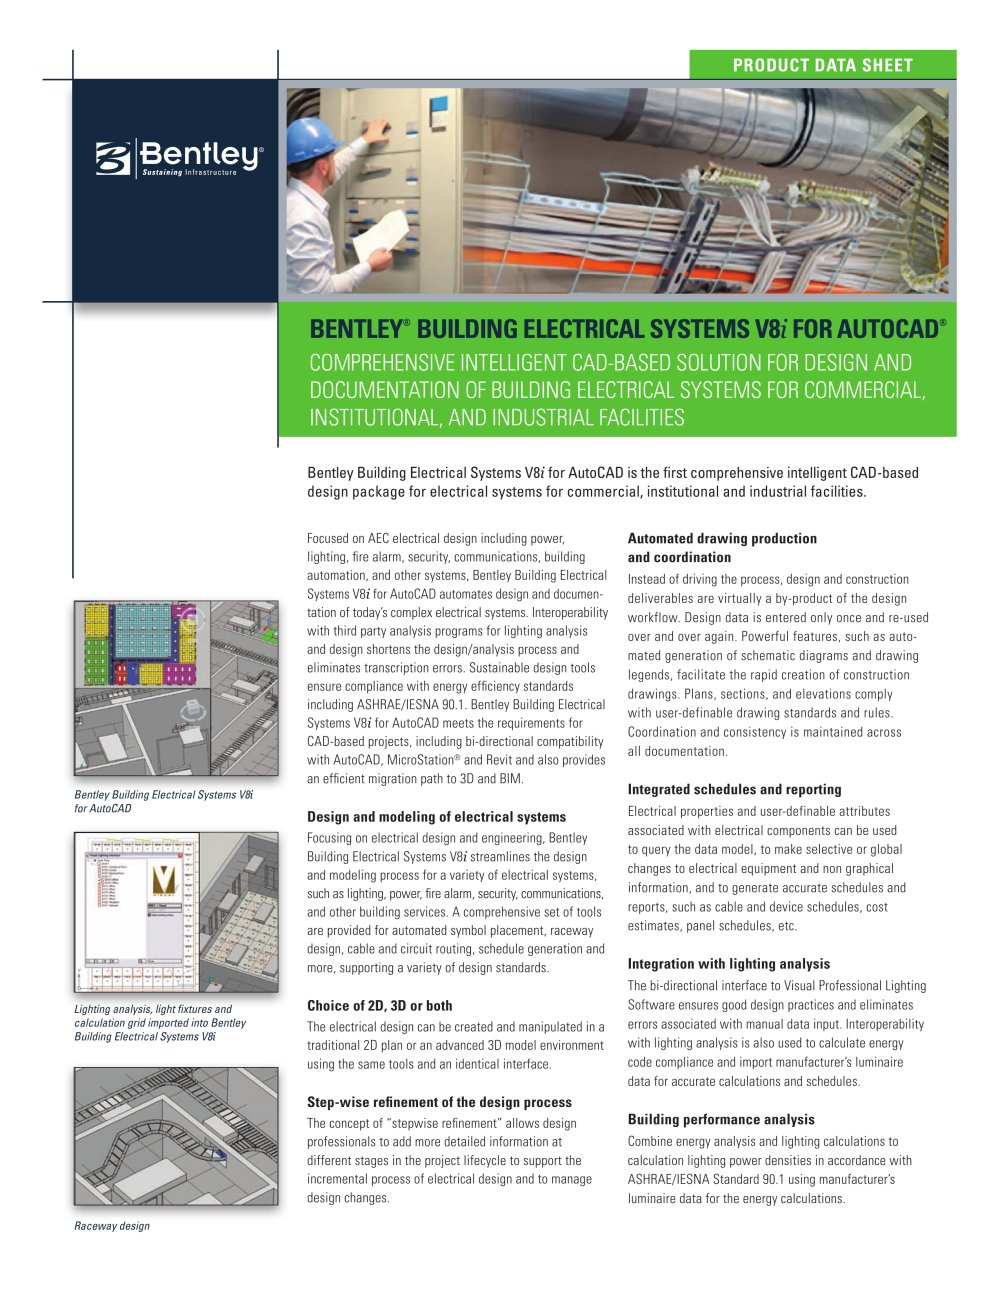 Bentley building electrical systems v8i for autocad 1 2 pages